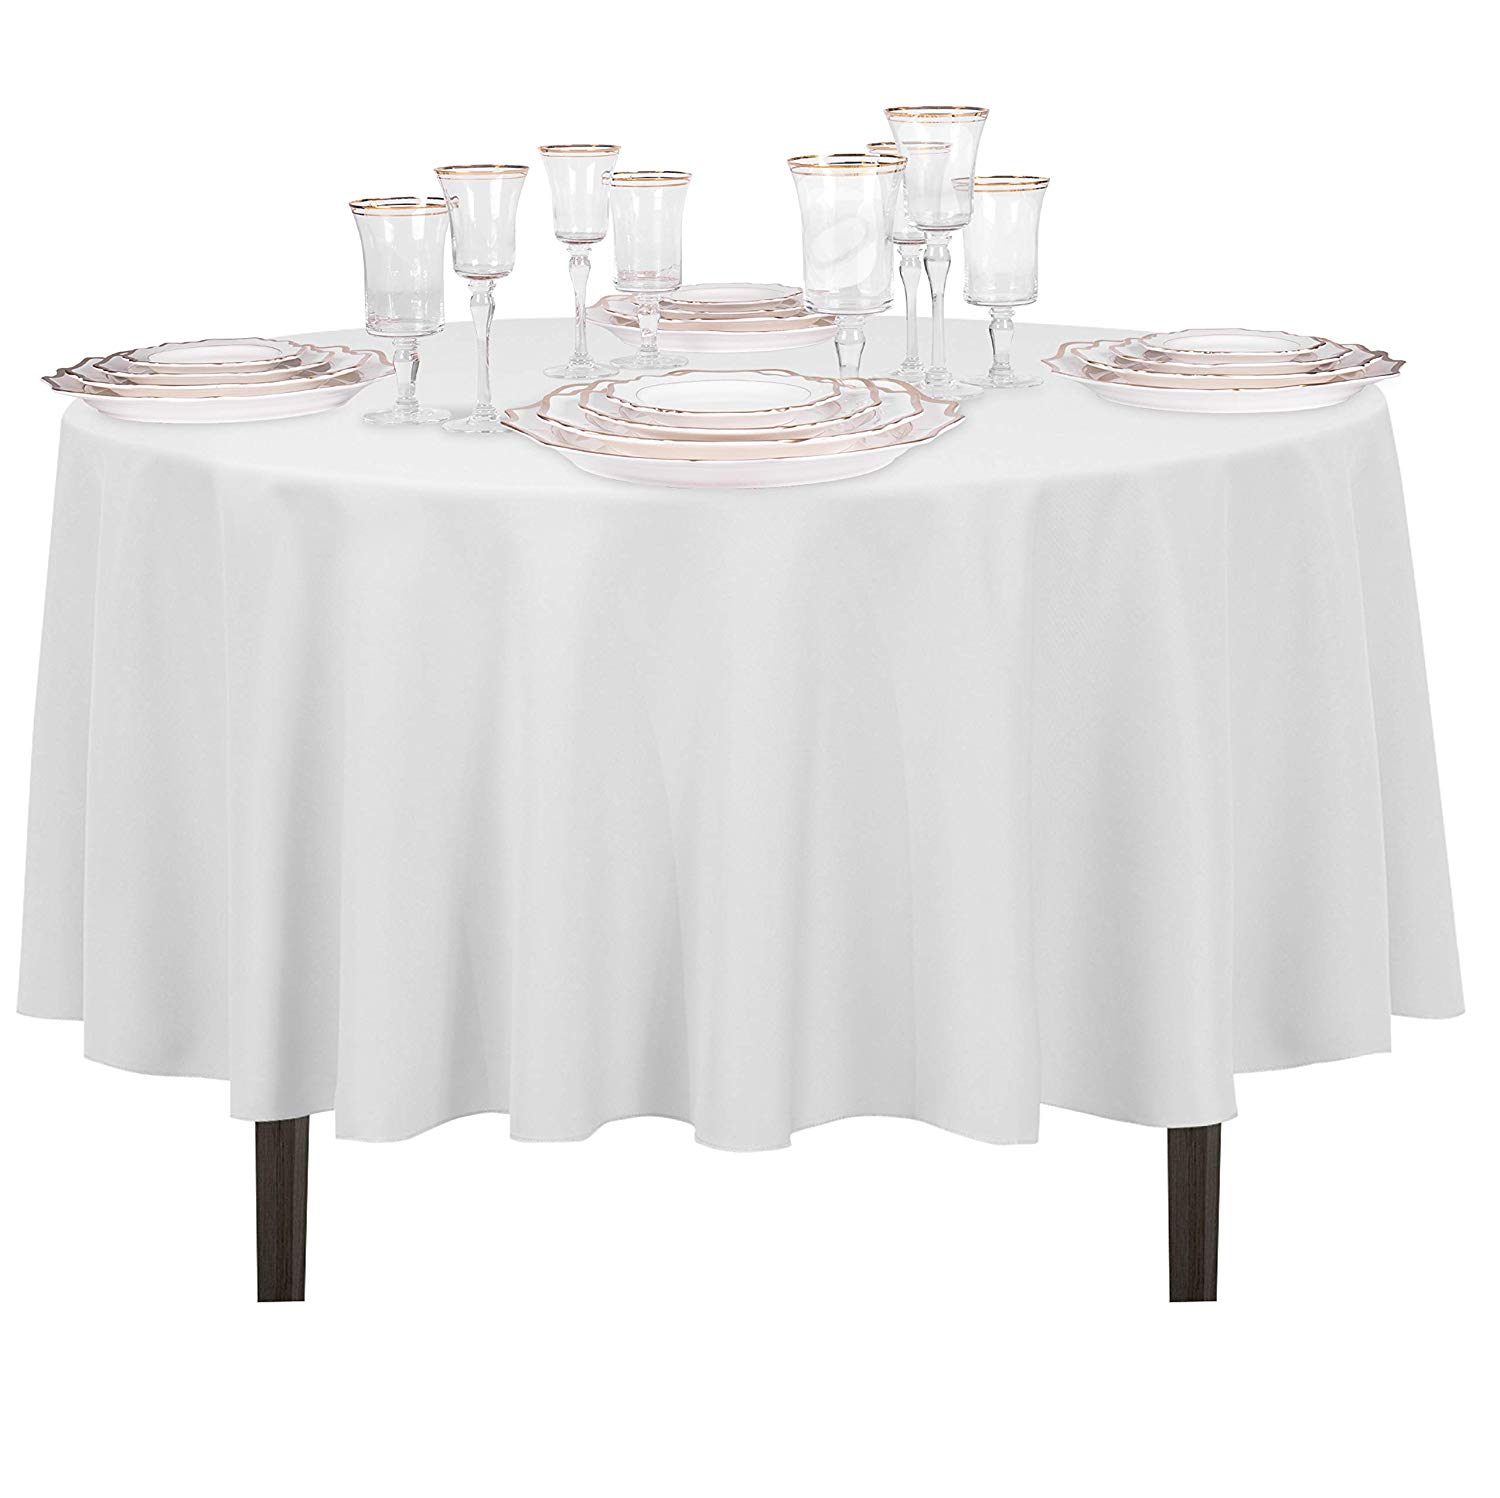 small round tablecloths target inches inch for measure kmart tree putting bulk dollar vinyl square plastic standard tablecloth linen accent sizes table winsome full size gold lamp